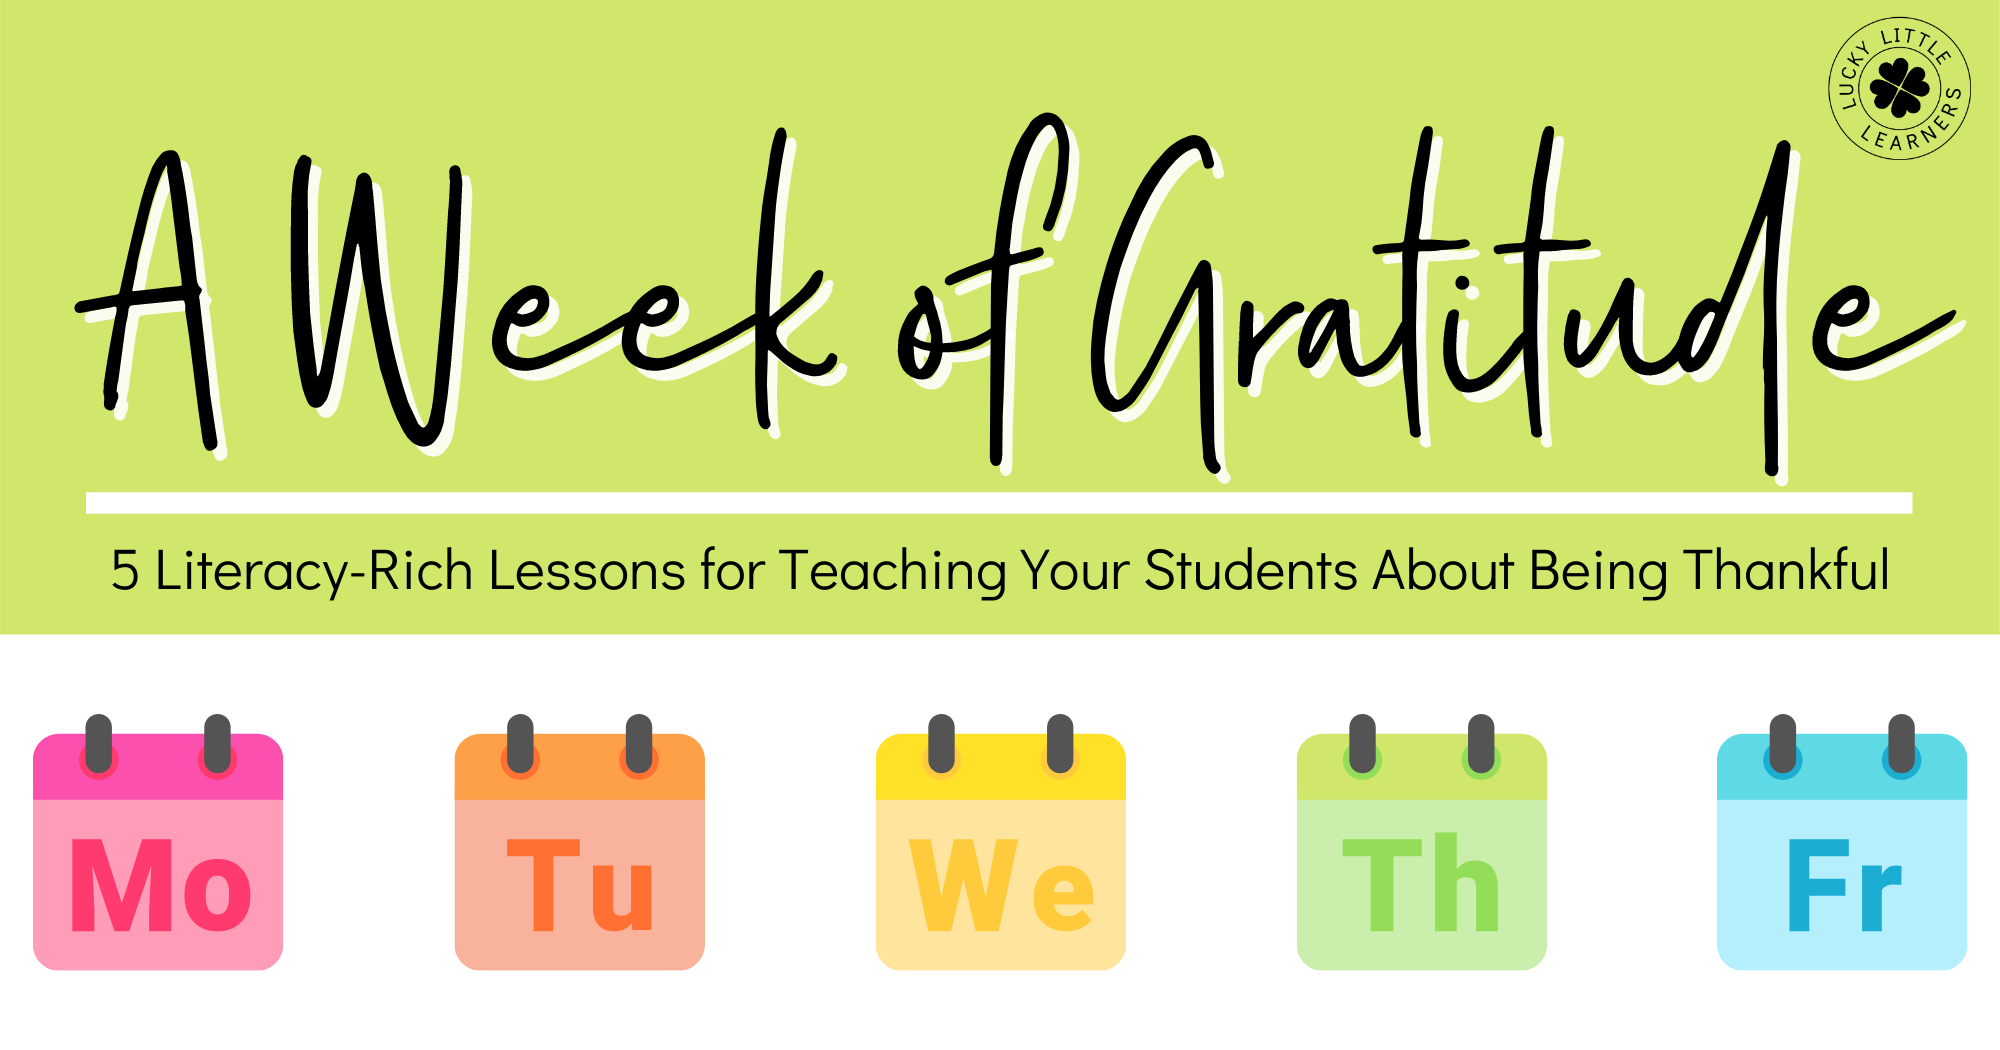 A Week of Gratitude: 5 Lessons to Teach Your Students About Being Thankful